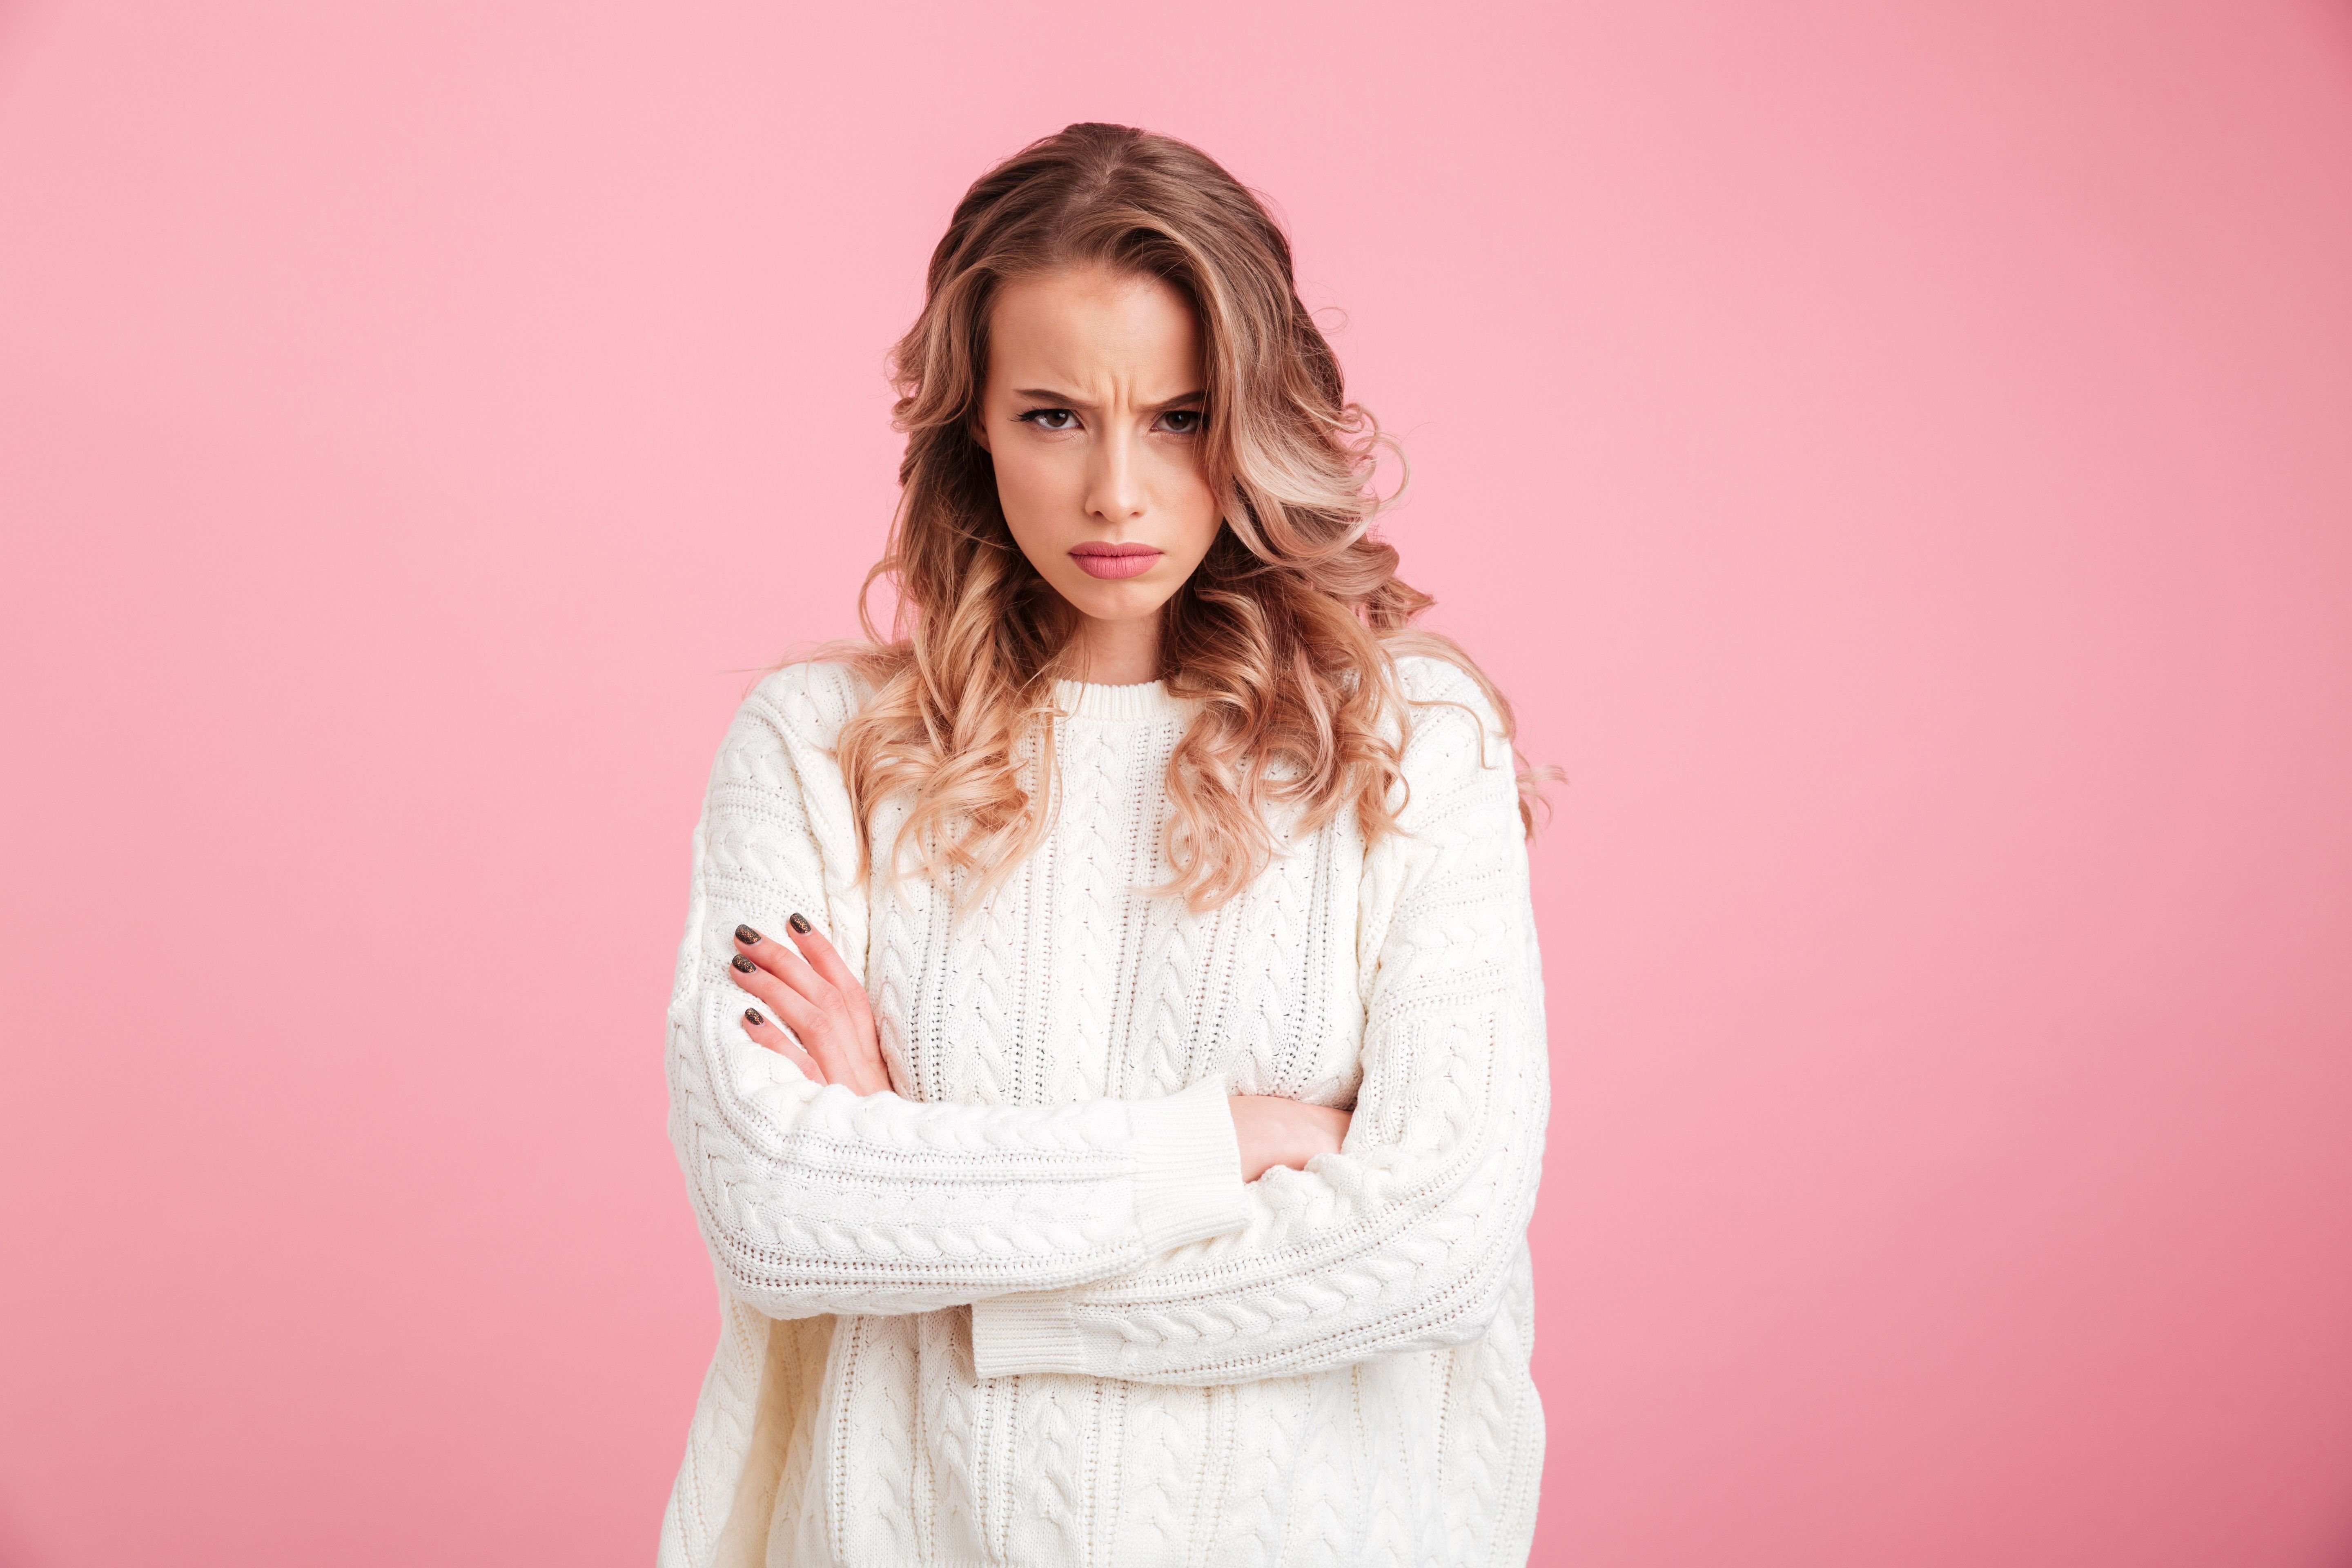 An angry woman crossing her arms.   Photo: Shutterstock